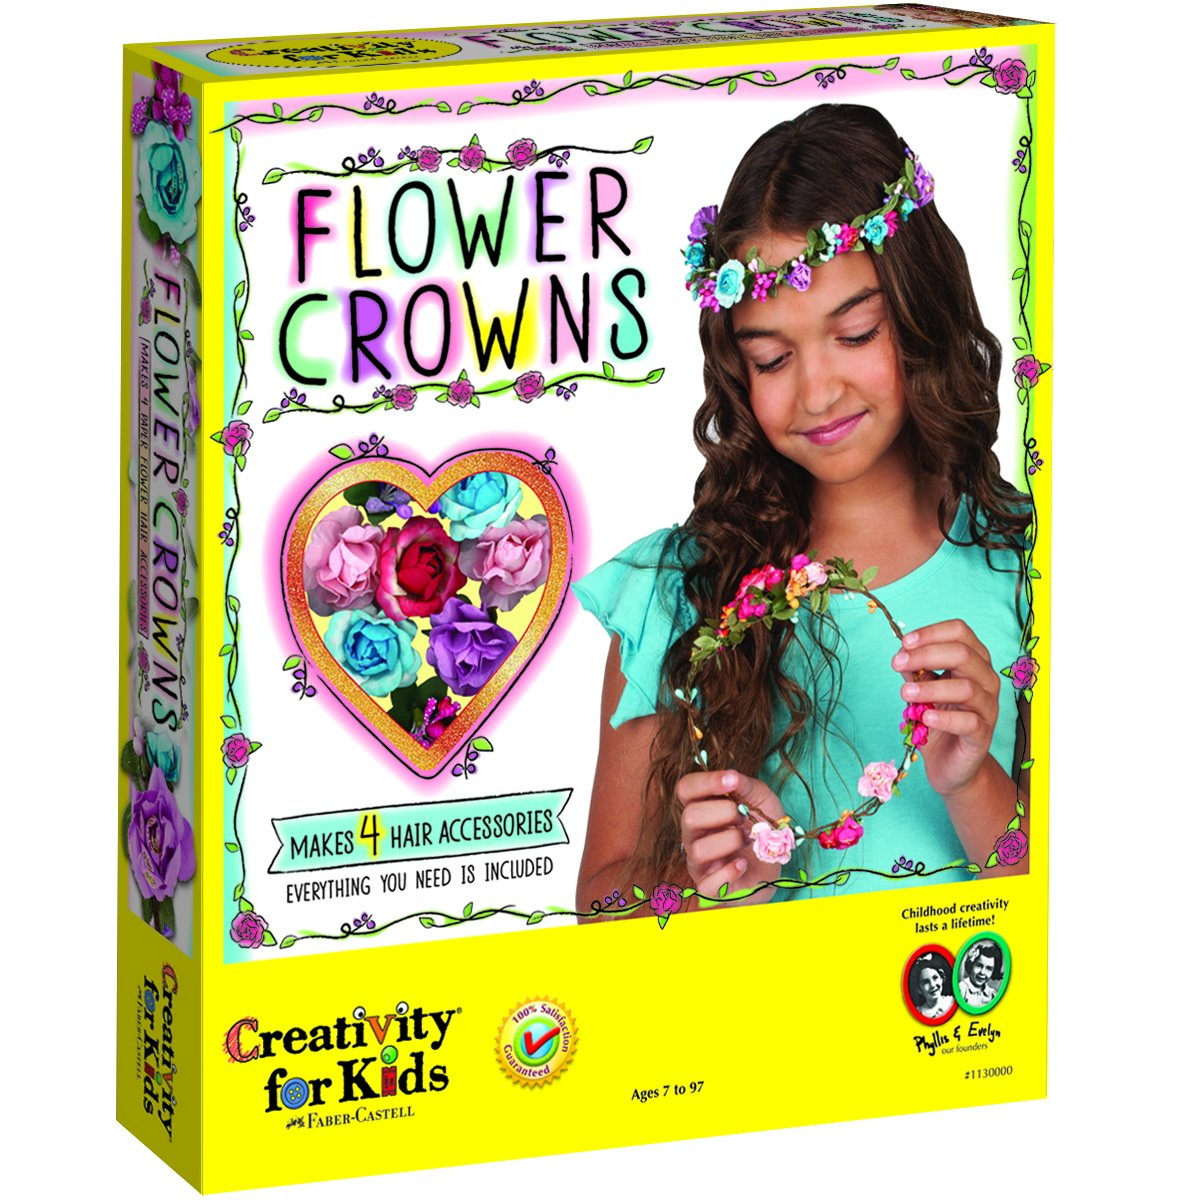 Faber-Castell Creativity for Kids Flower Crowns